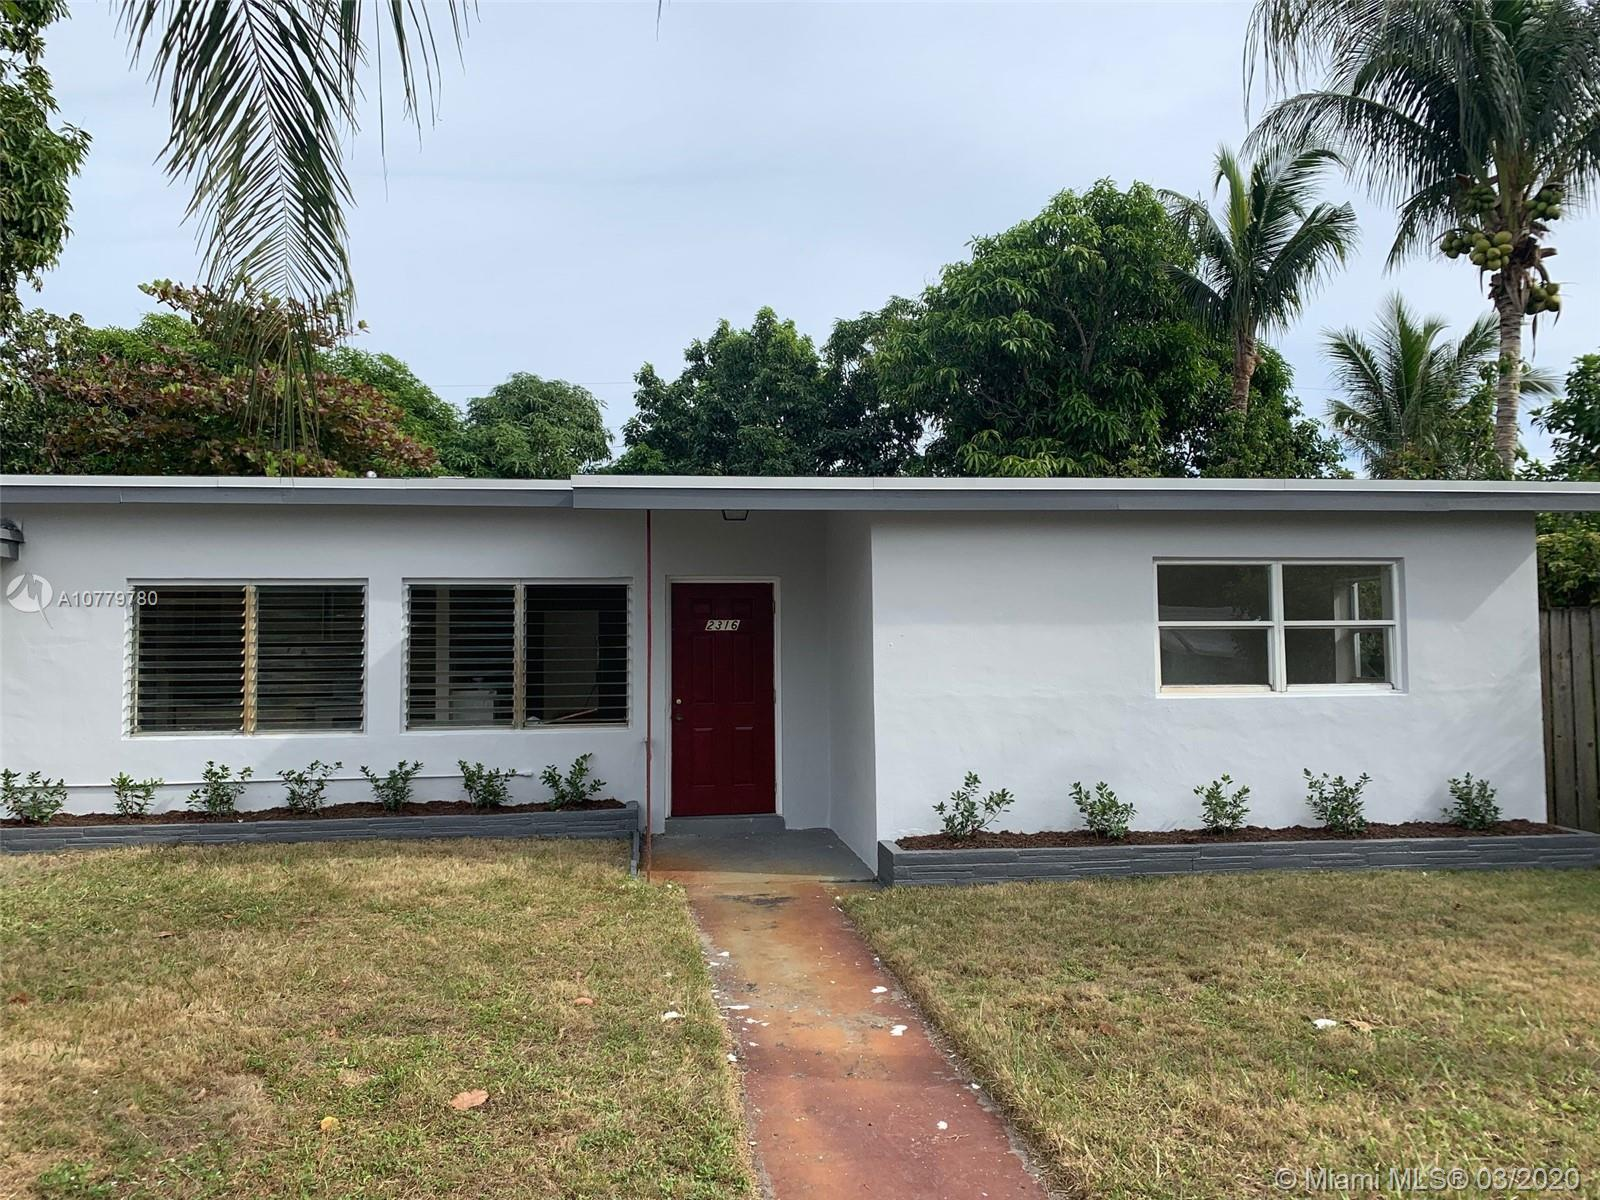 3/1 on great street in Boynton Beach.  New Roof in 2019.  Great location in proximity to beaches, I-